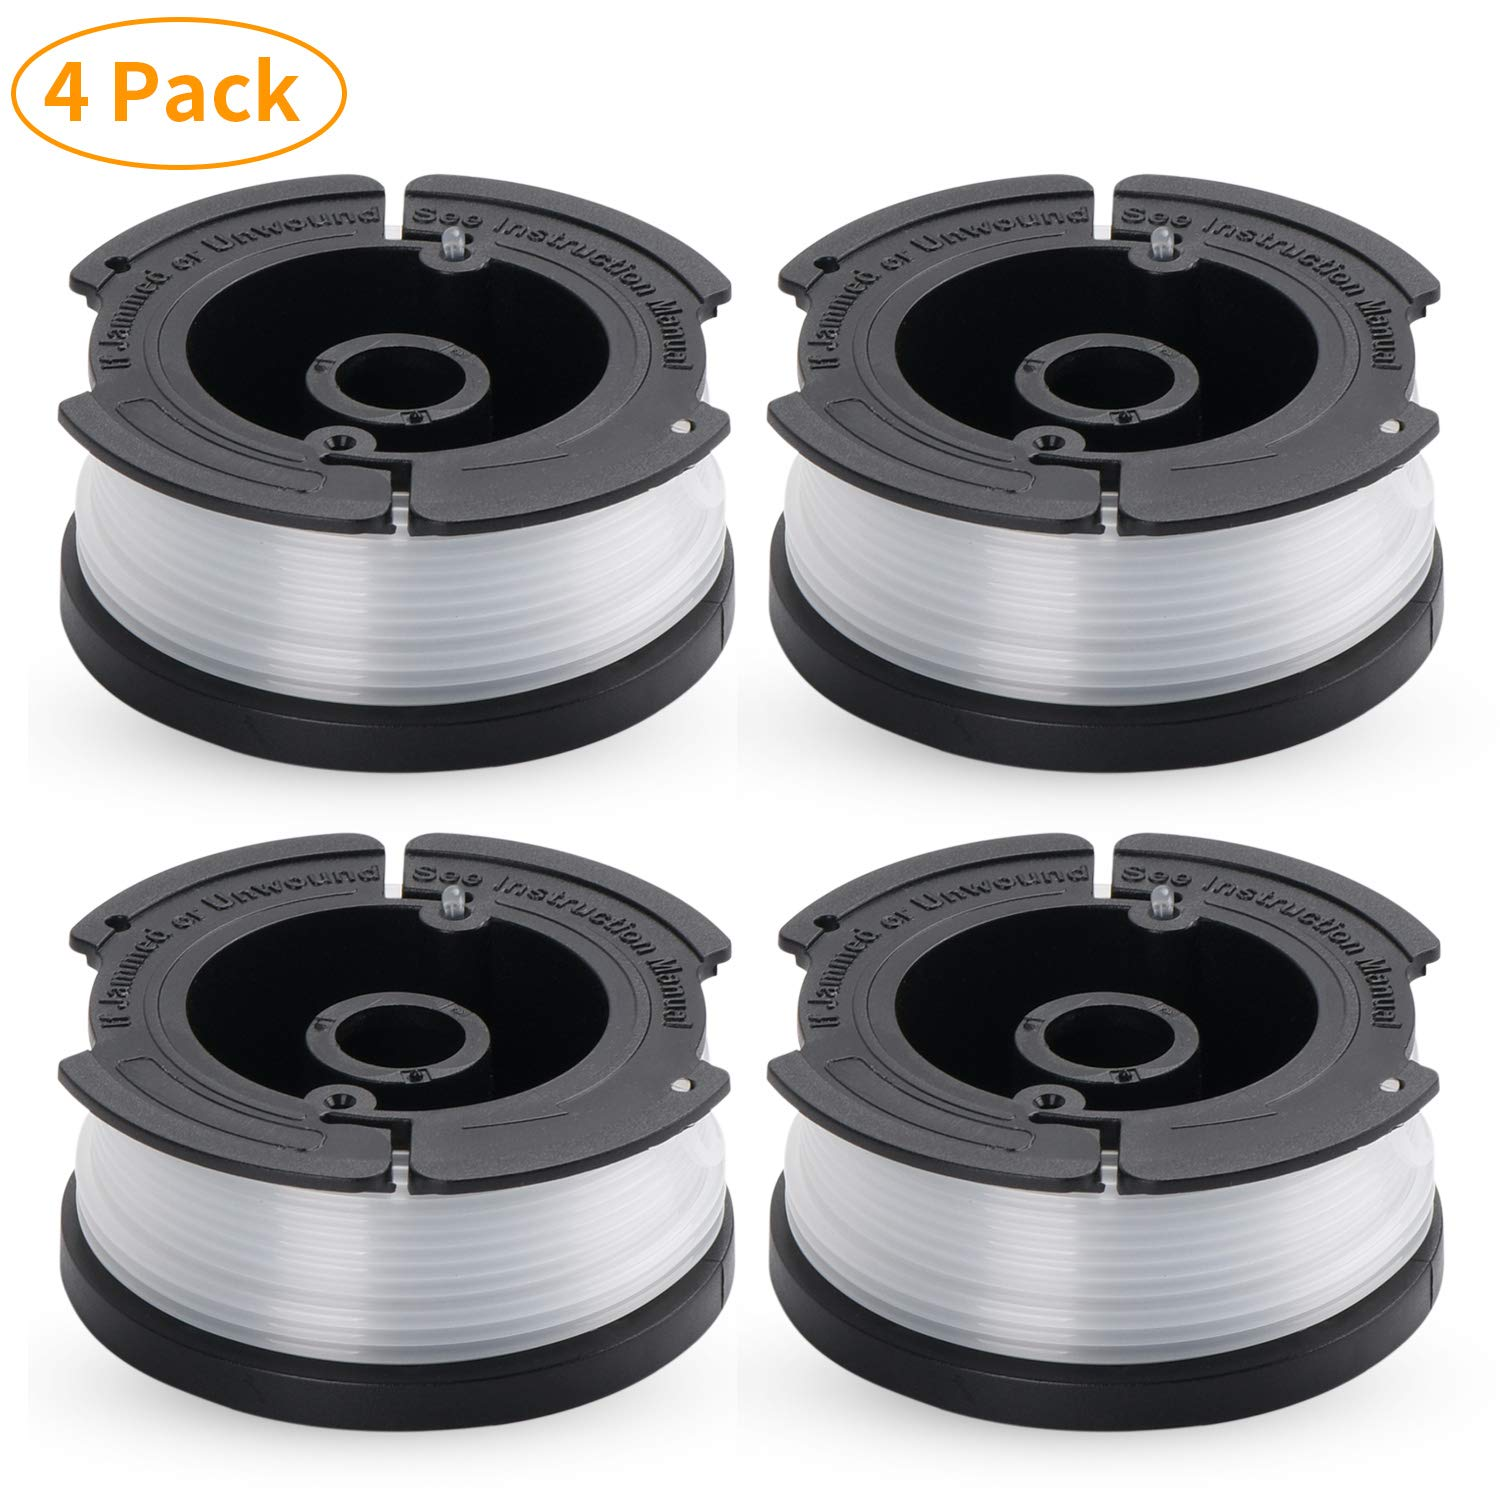 MUDNRRY 4-Pack Line String Trimmer Replacement Spool for Black and Decker AF-100 Autofeed Weed Eater Spool 30 Feet/0.065 Inches